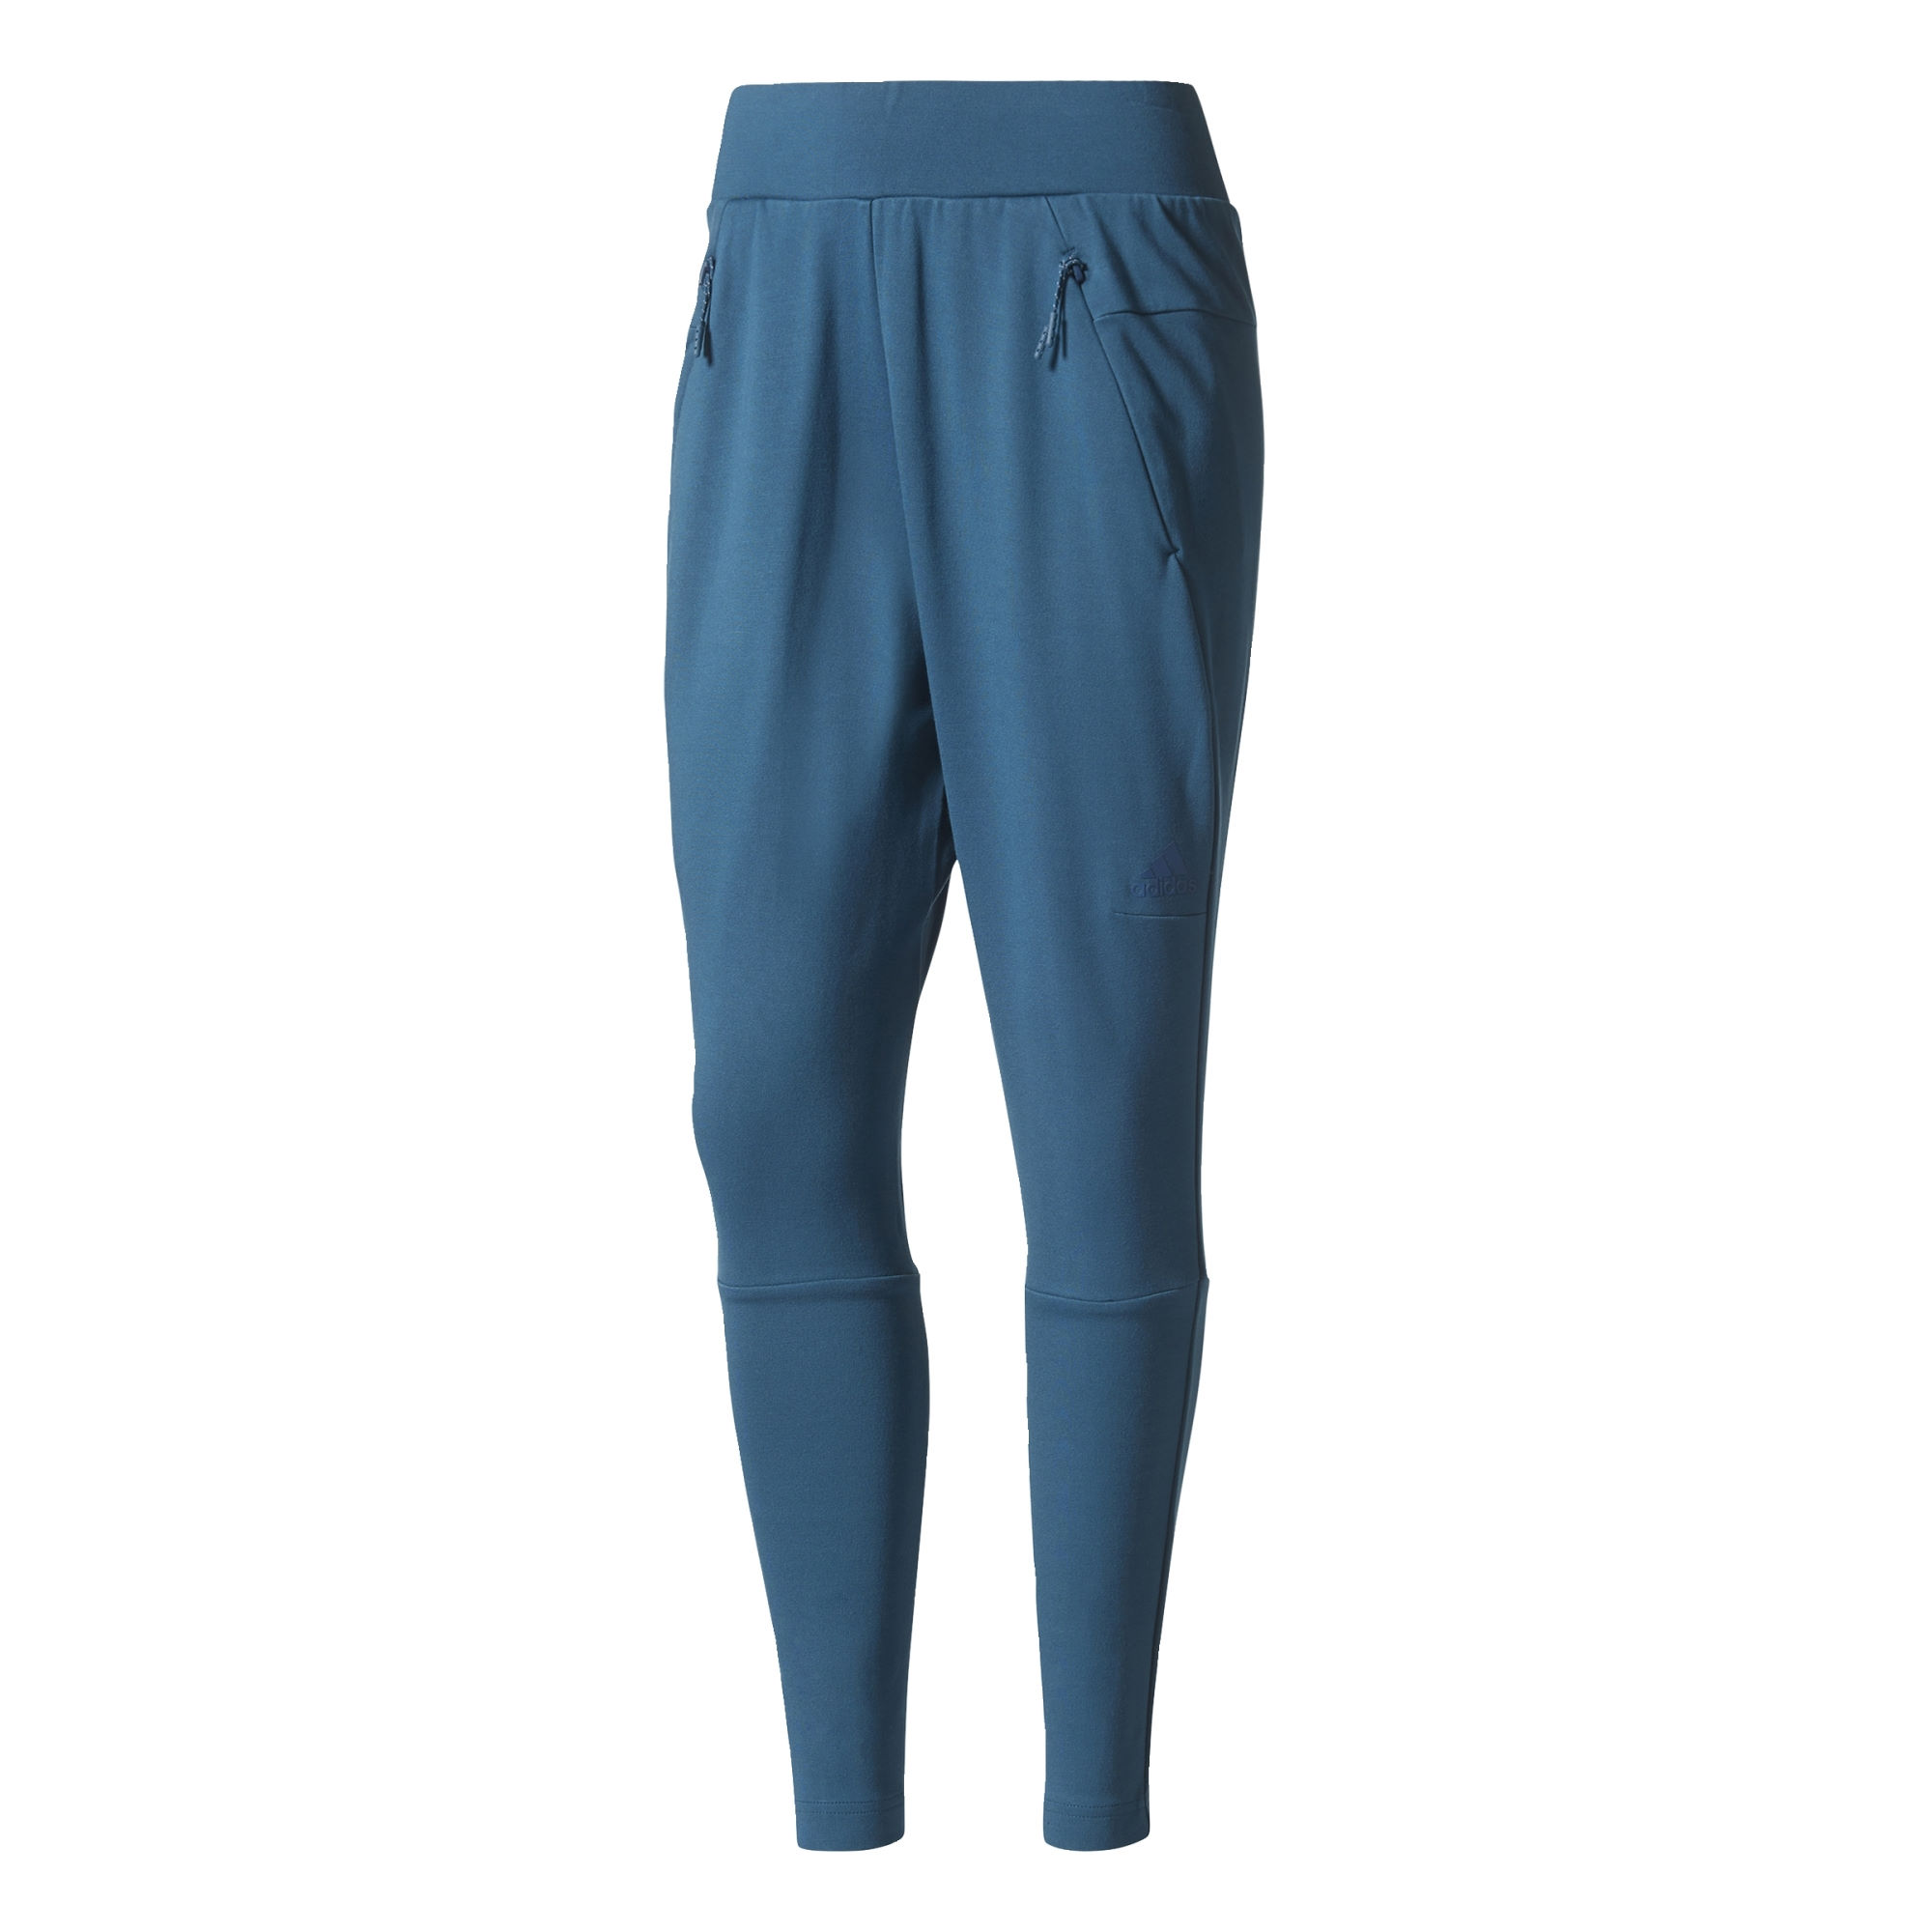 pantalons de running adidas women 39 s zne tapp pant. Black Bedroom Furniture Sets. Home Design Ideas